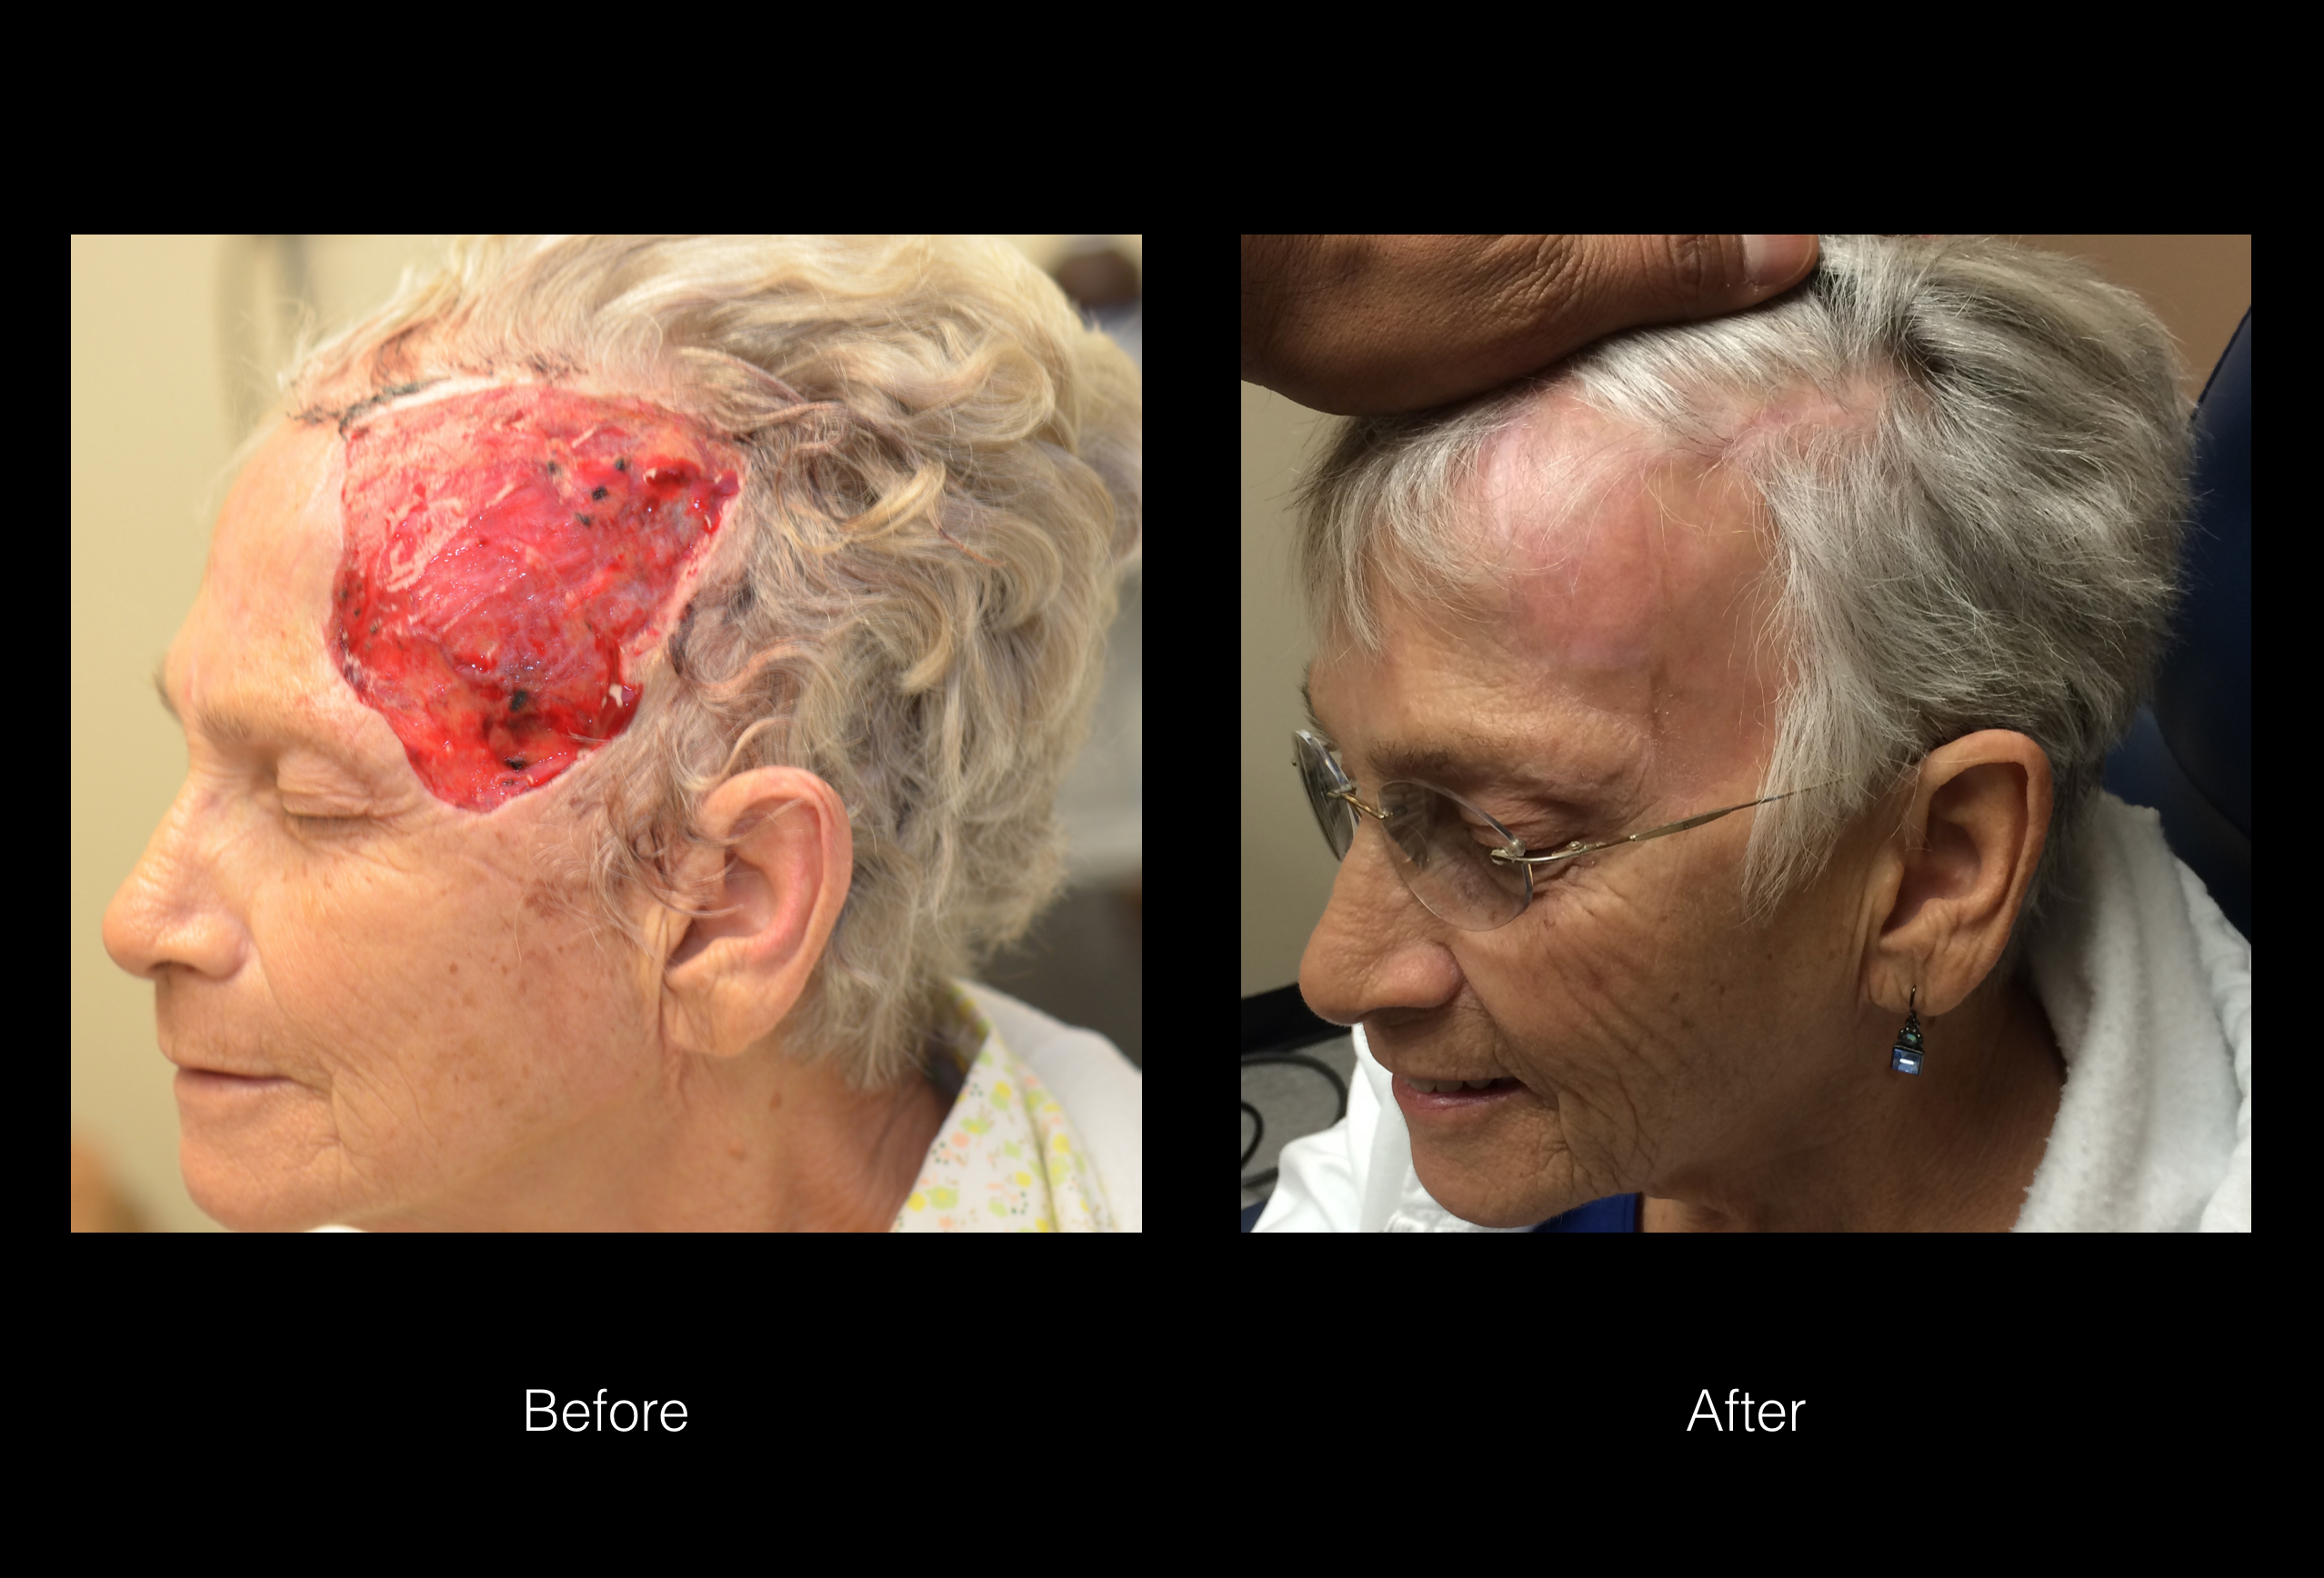 Cancer Reconstruction